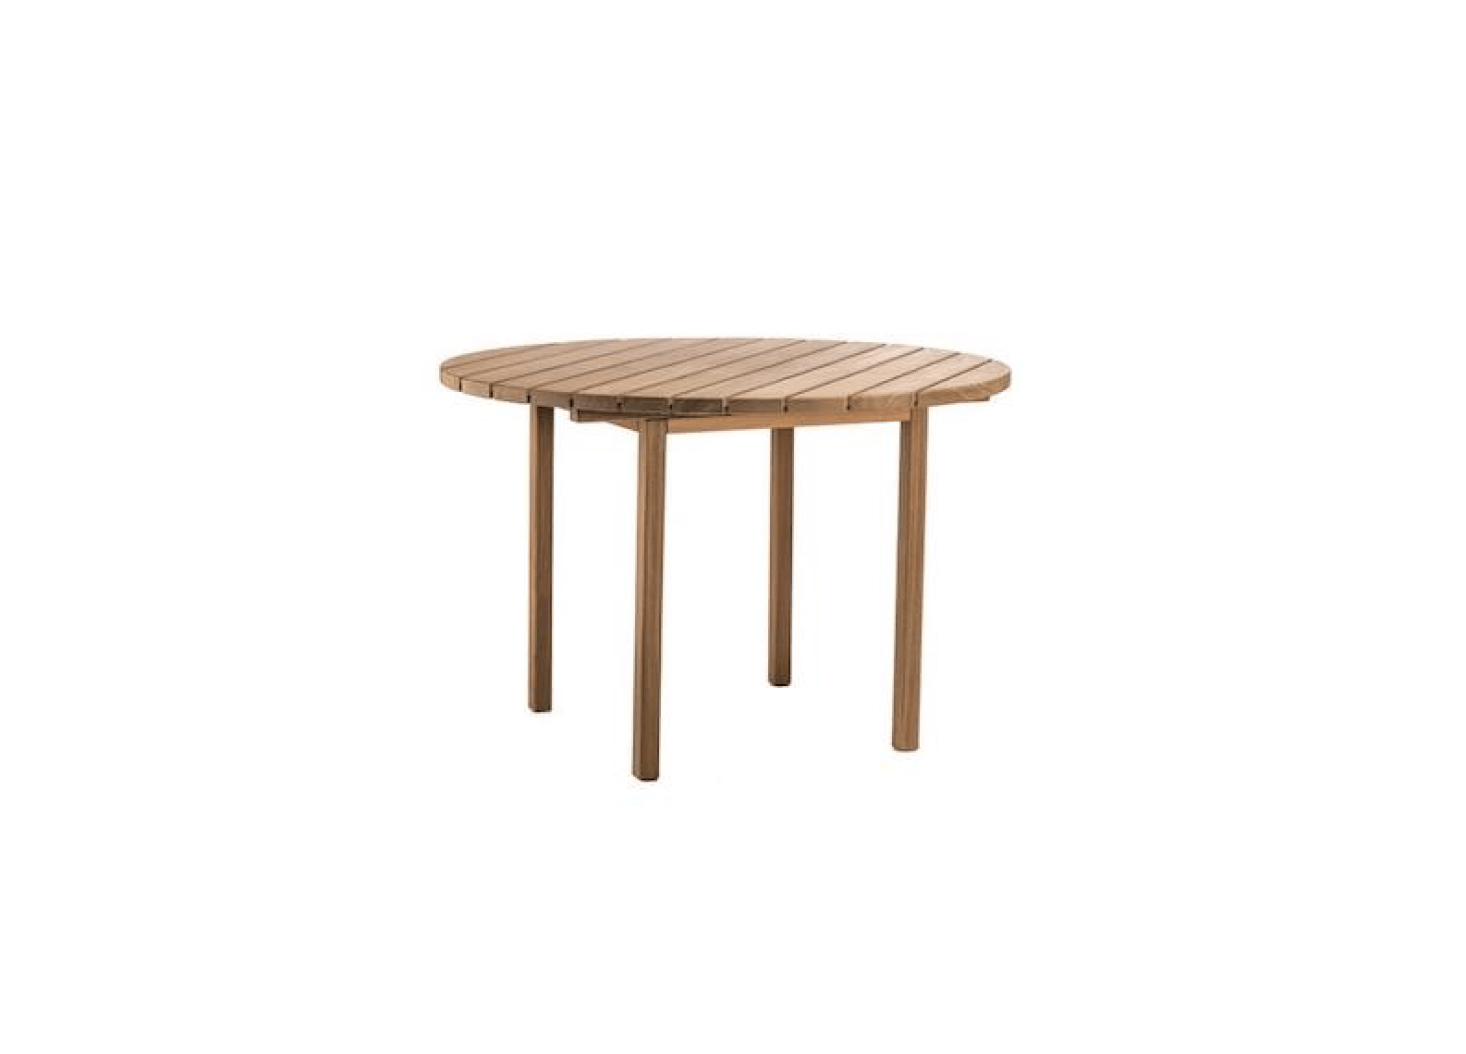 Round outdoor table Umbrella Djuro Round Dining Table Designed By Matilda Lindblom For Skargaarden Measures 4331 In Gardenista 10 Easy Pieces Round Wooden Dining Tables Gardenista